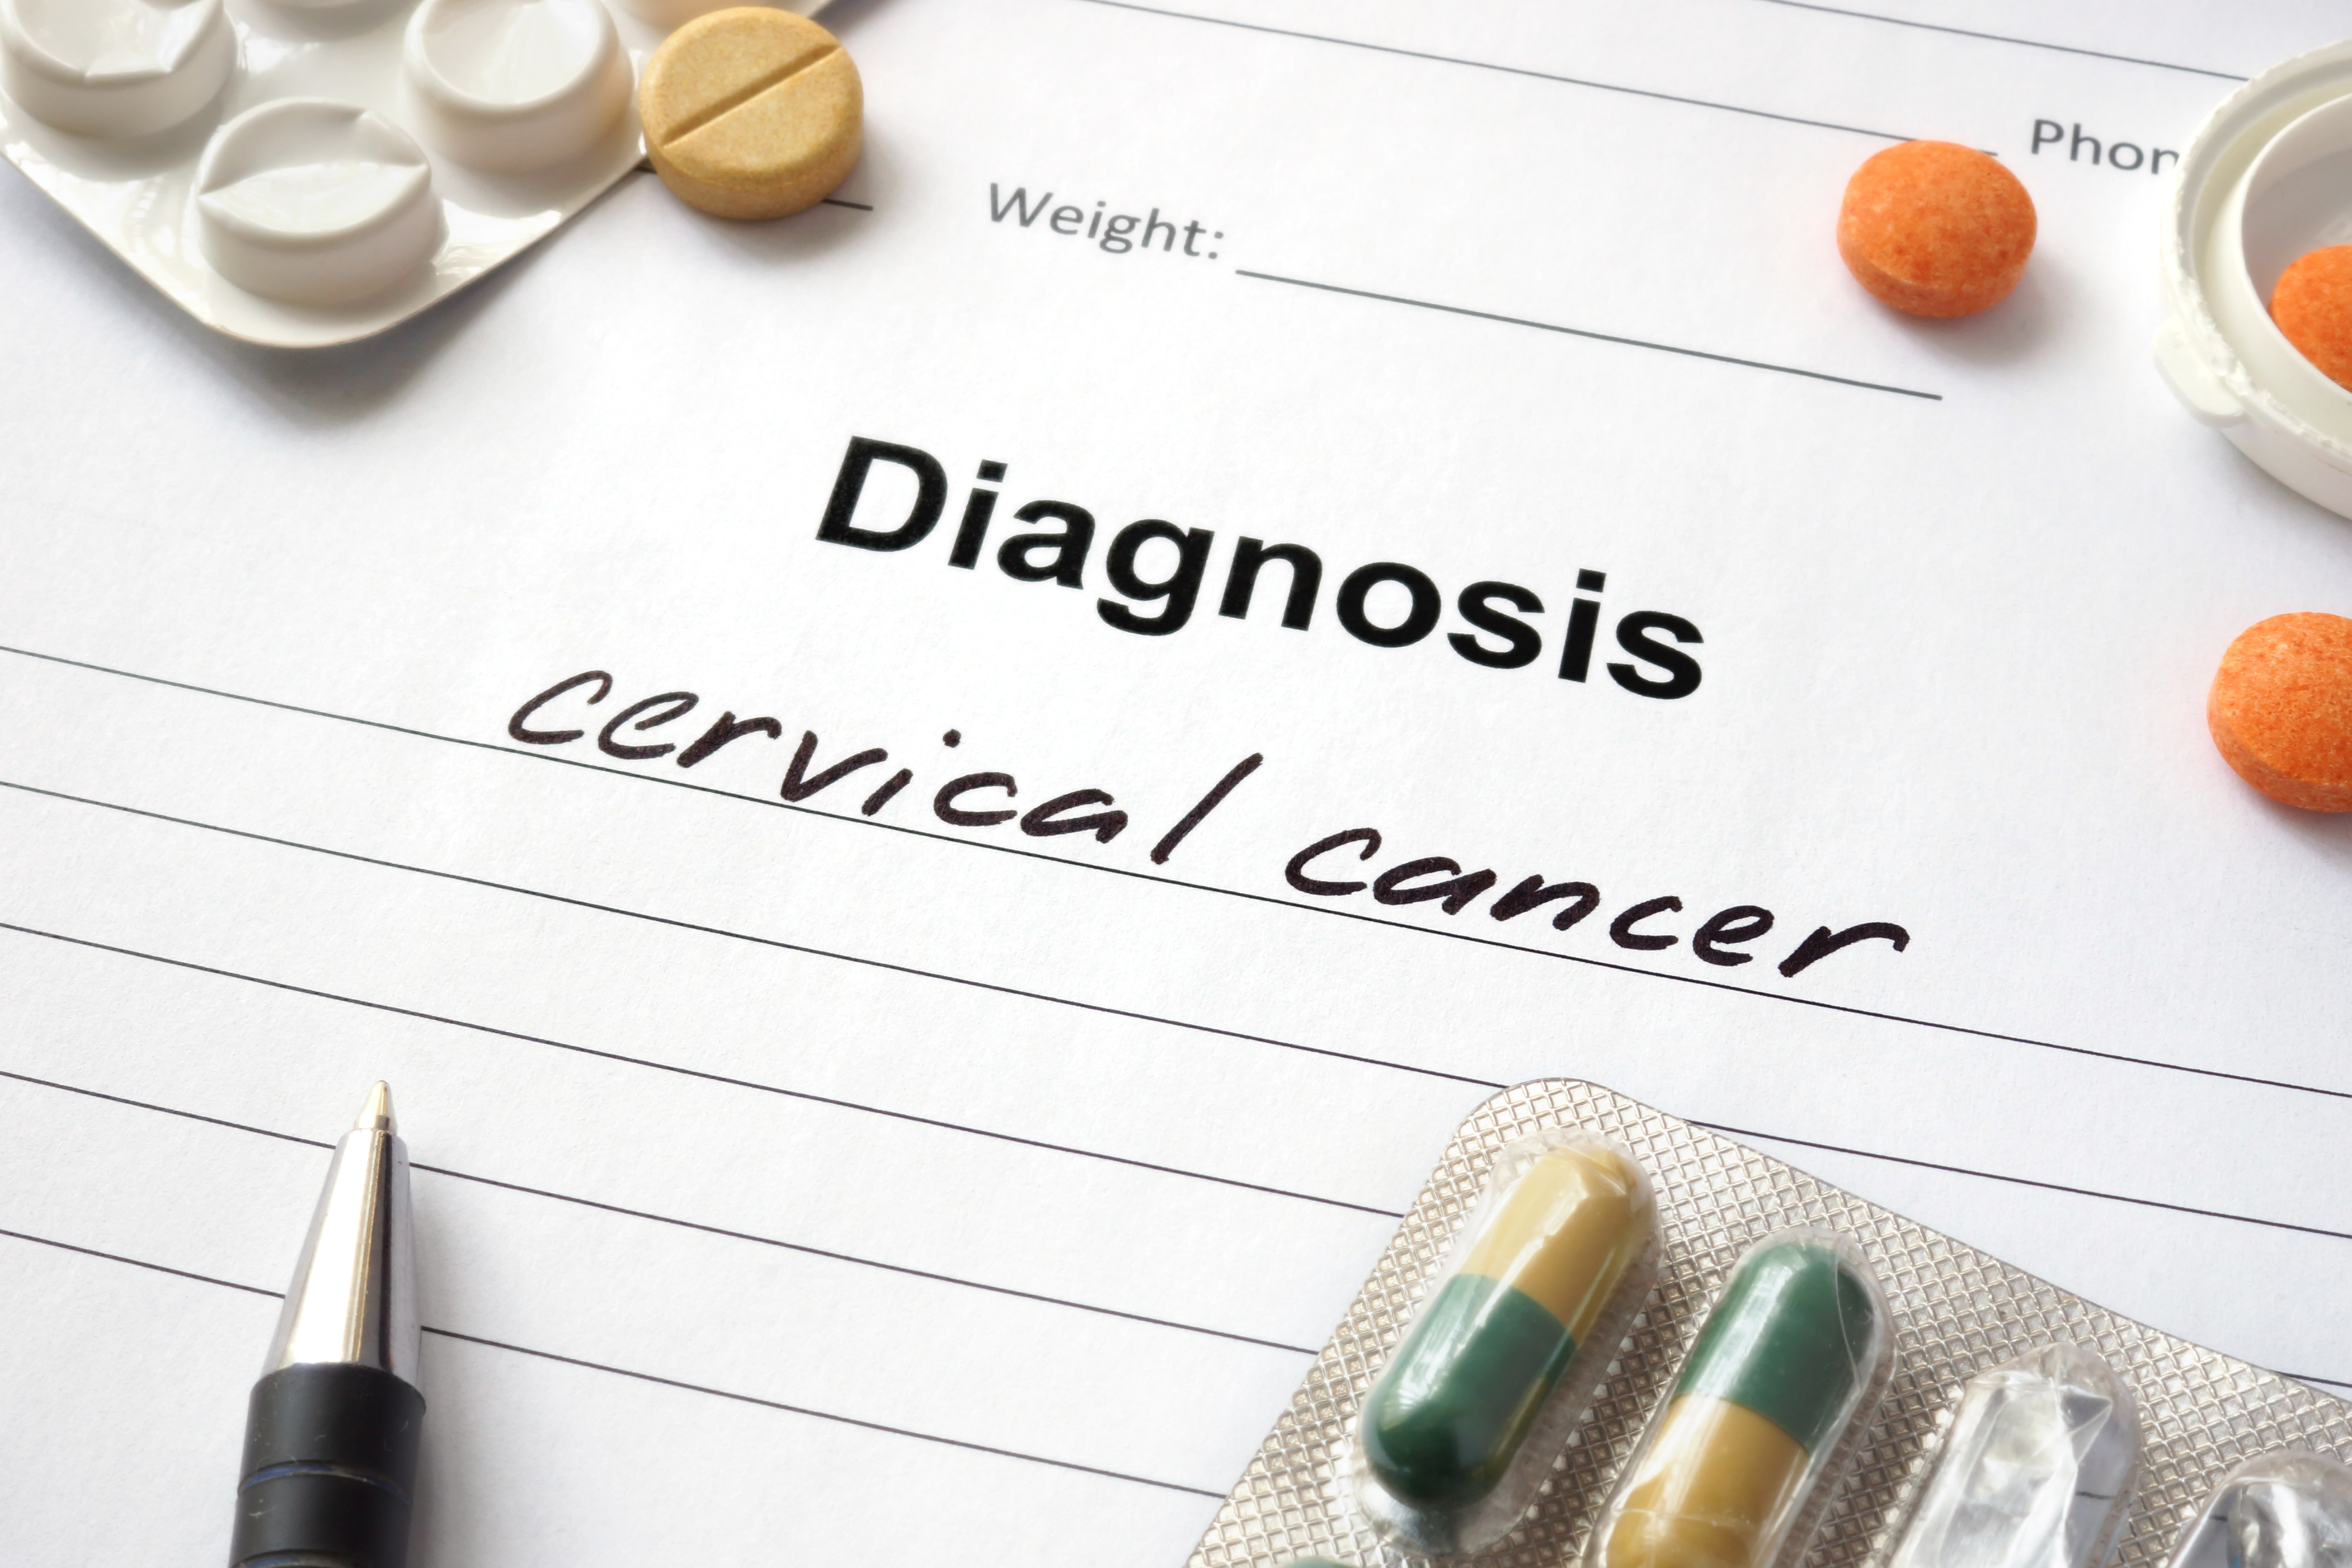 Diagnosis cervical cancer written in the diagnostic form and pills.